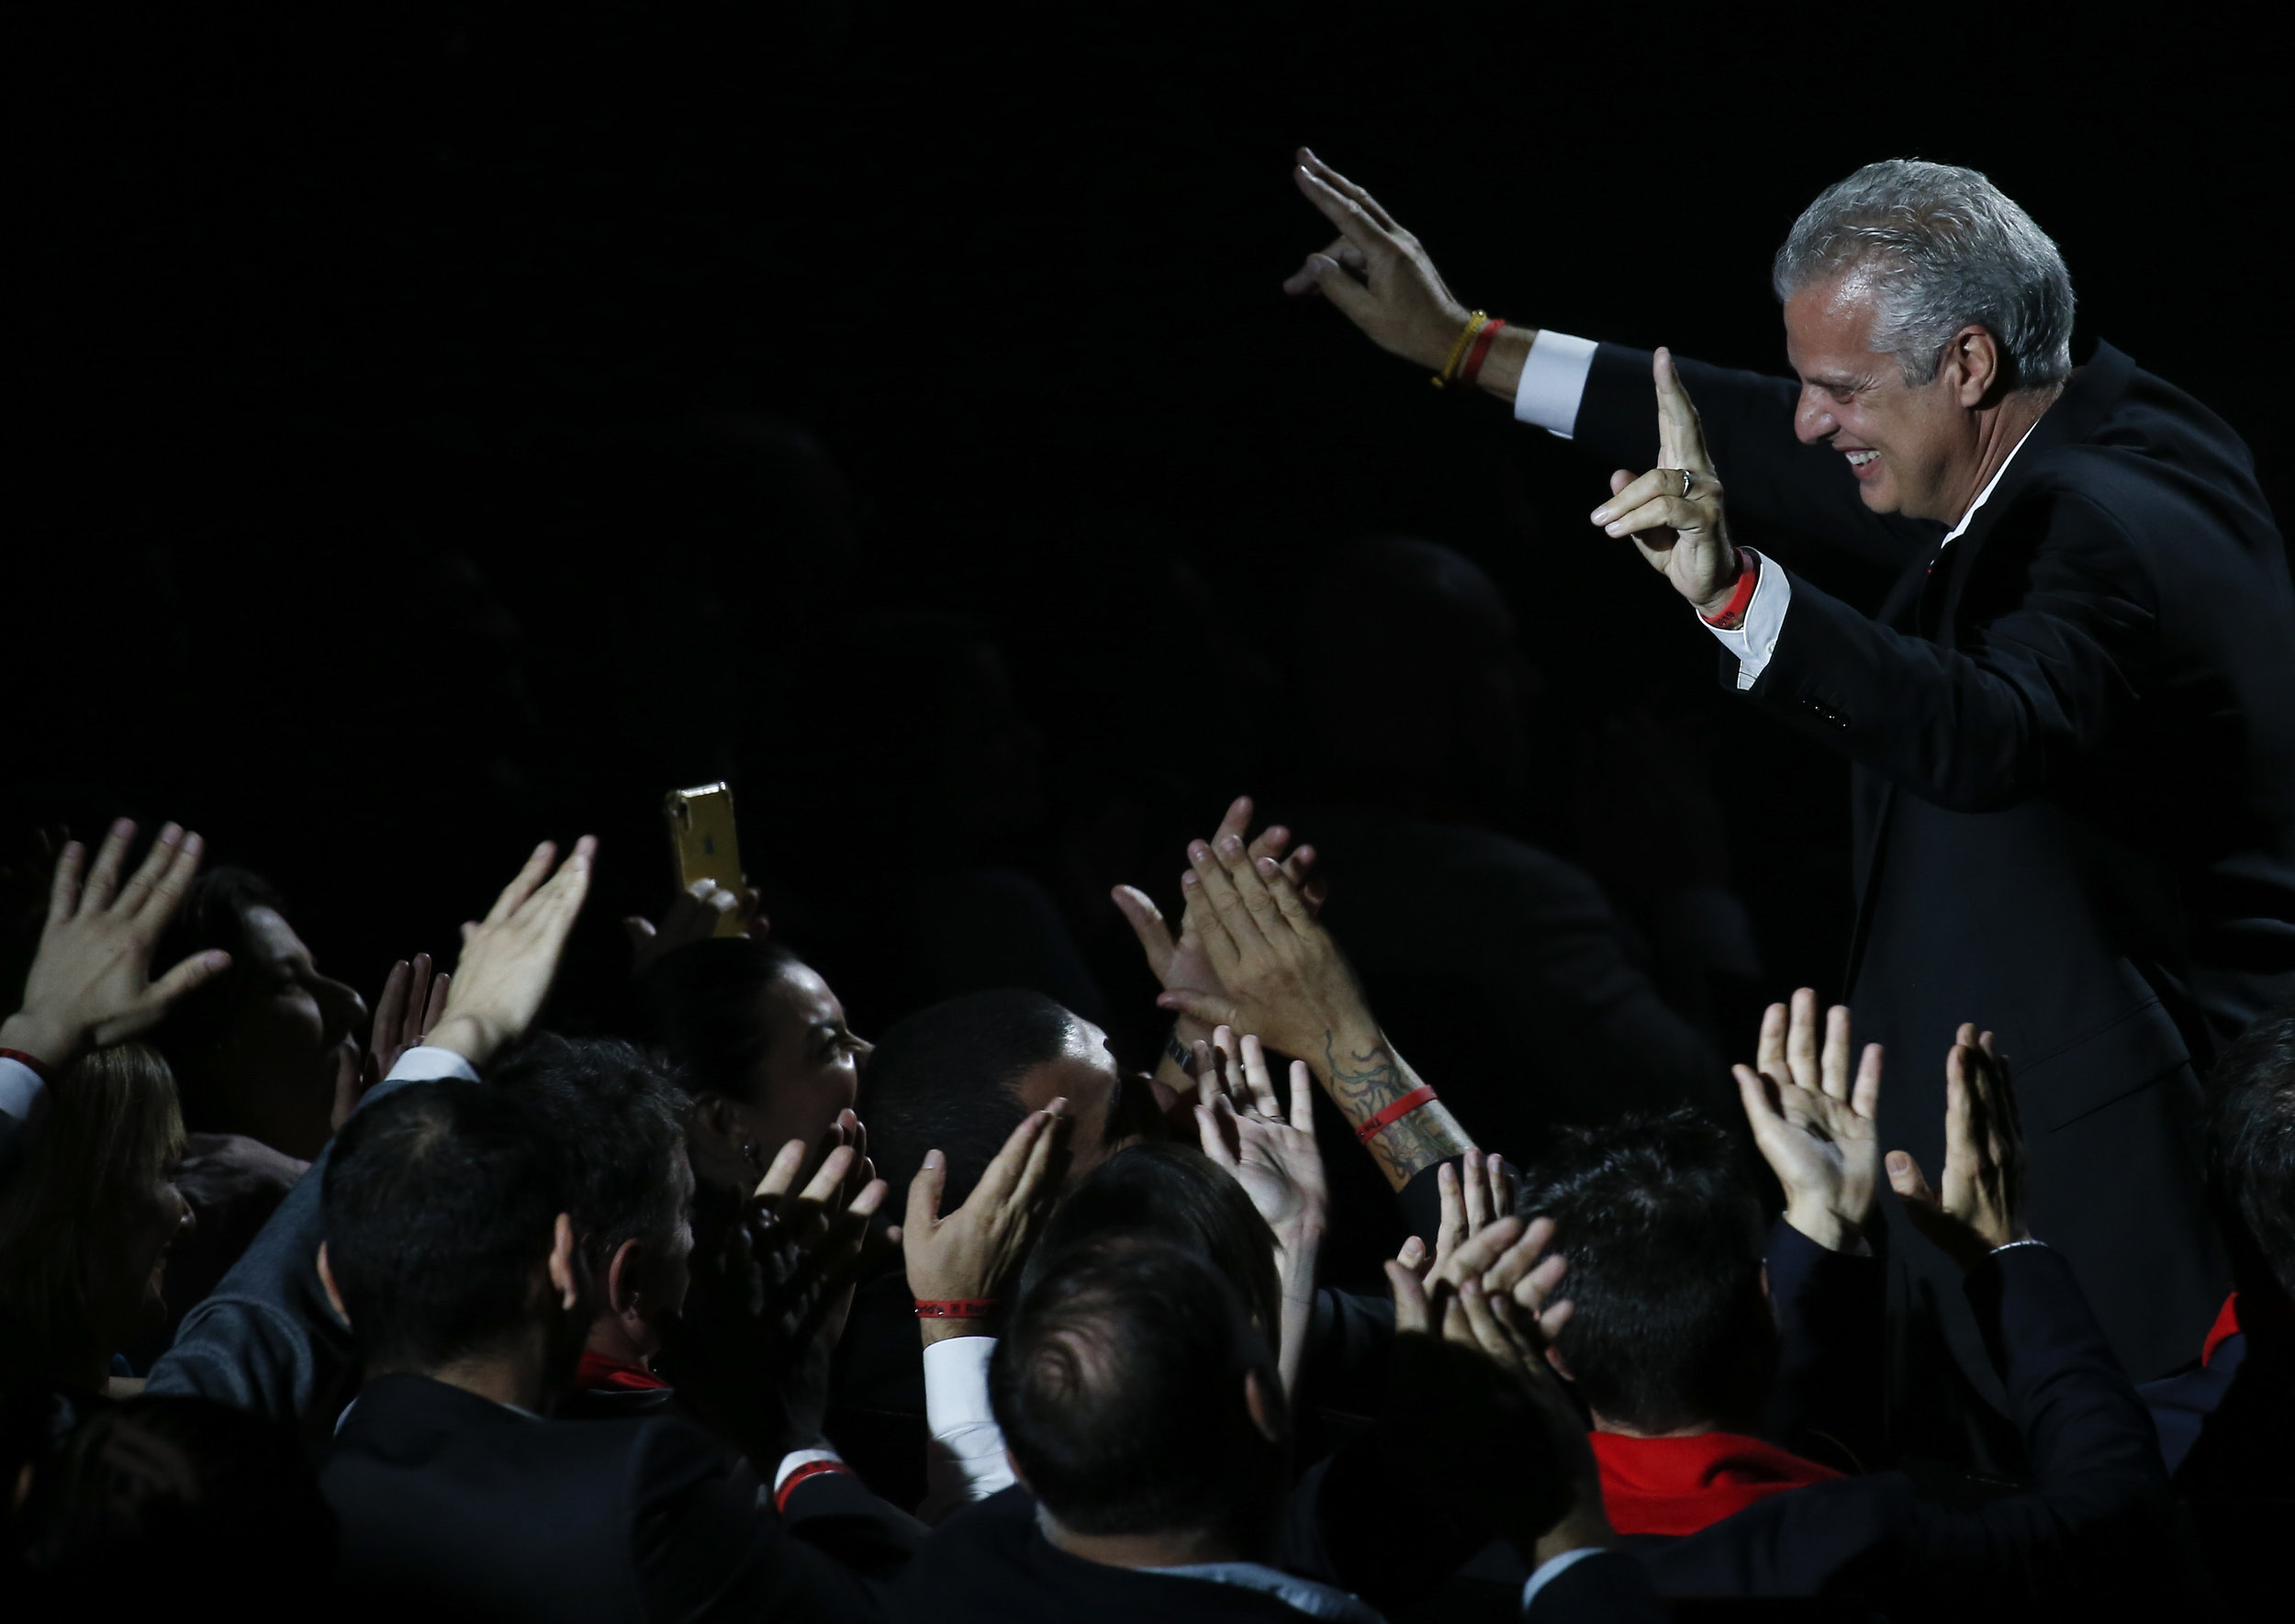 Chef Eric Ripert of Le Bernadin restaurant reacts after receiving an award during the World's 50 Best Restaurants Awards at the Marina Bay Sands in Singapore, June 25, 2019. REUTERS/Feline Lim